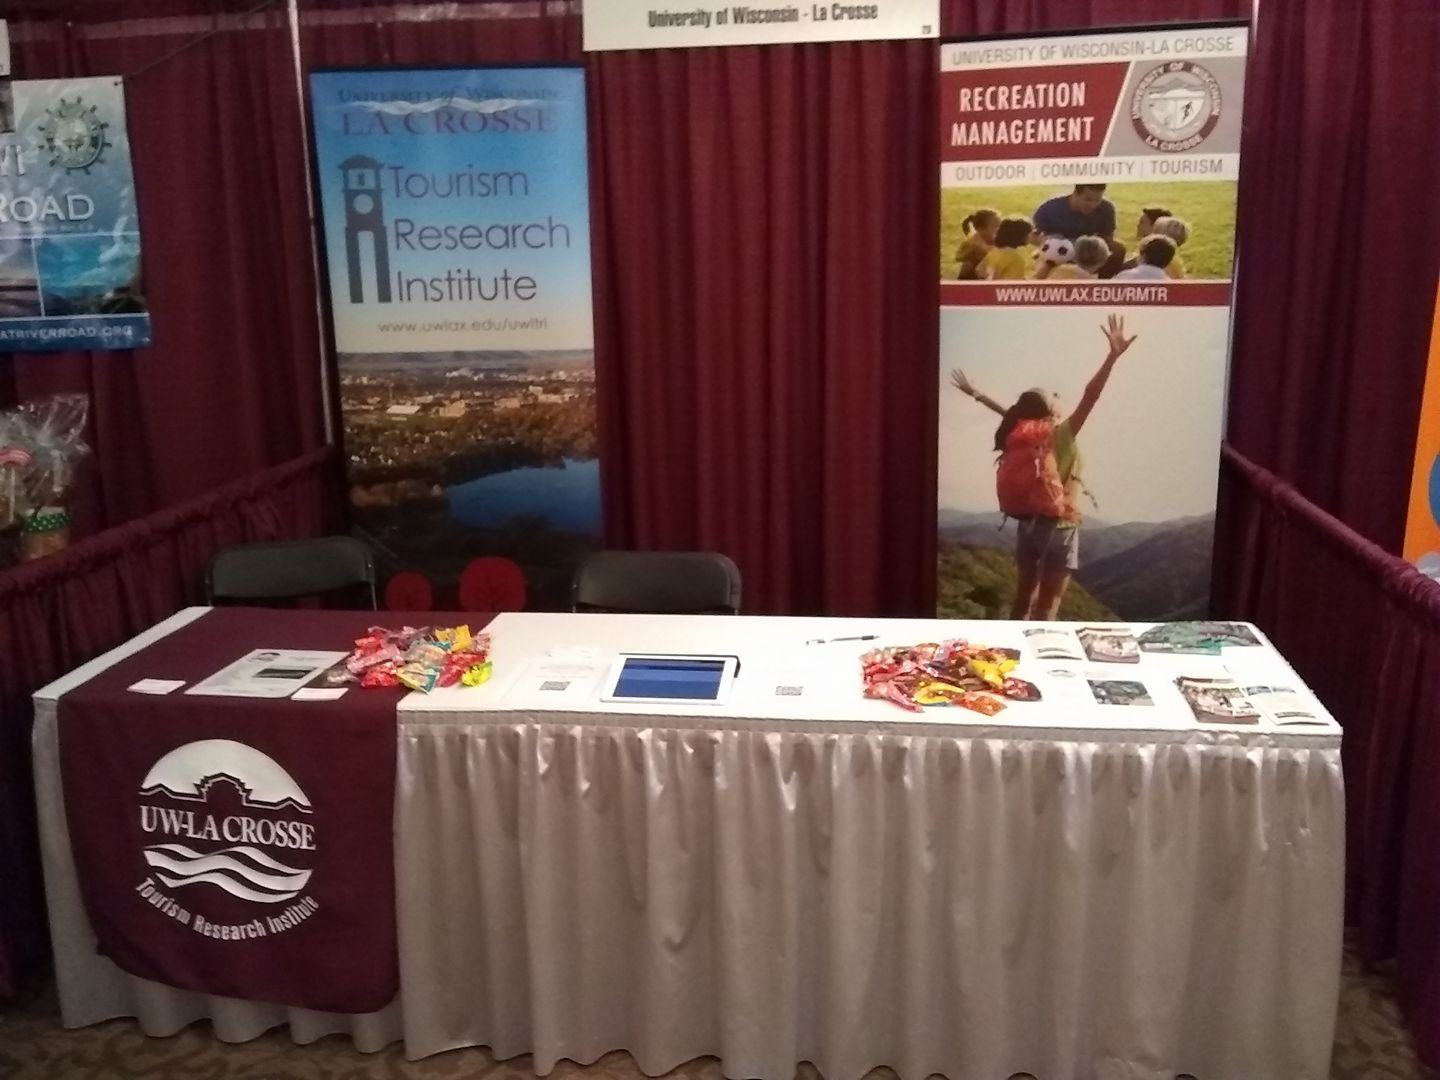 Wisconsin Governors Conference on Tourism Exhibit Booth Photo